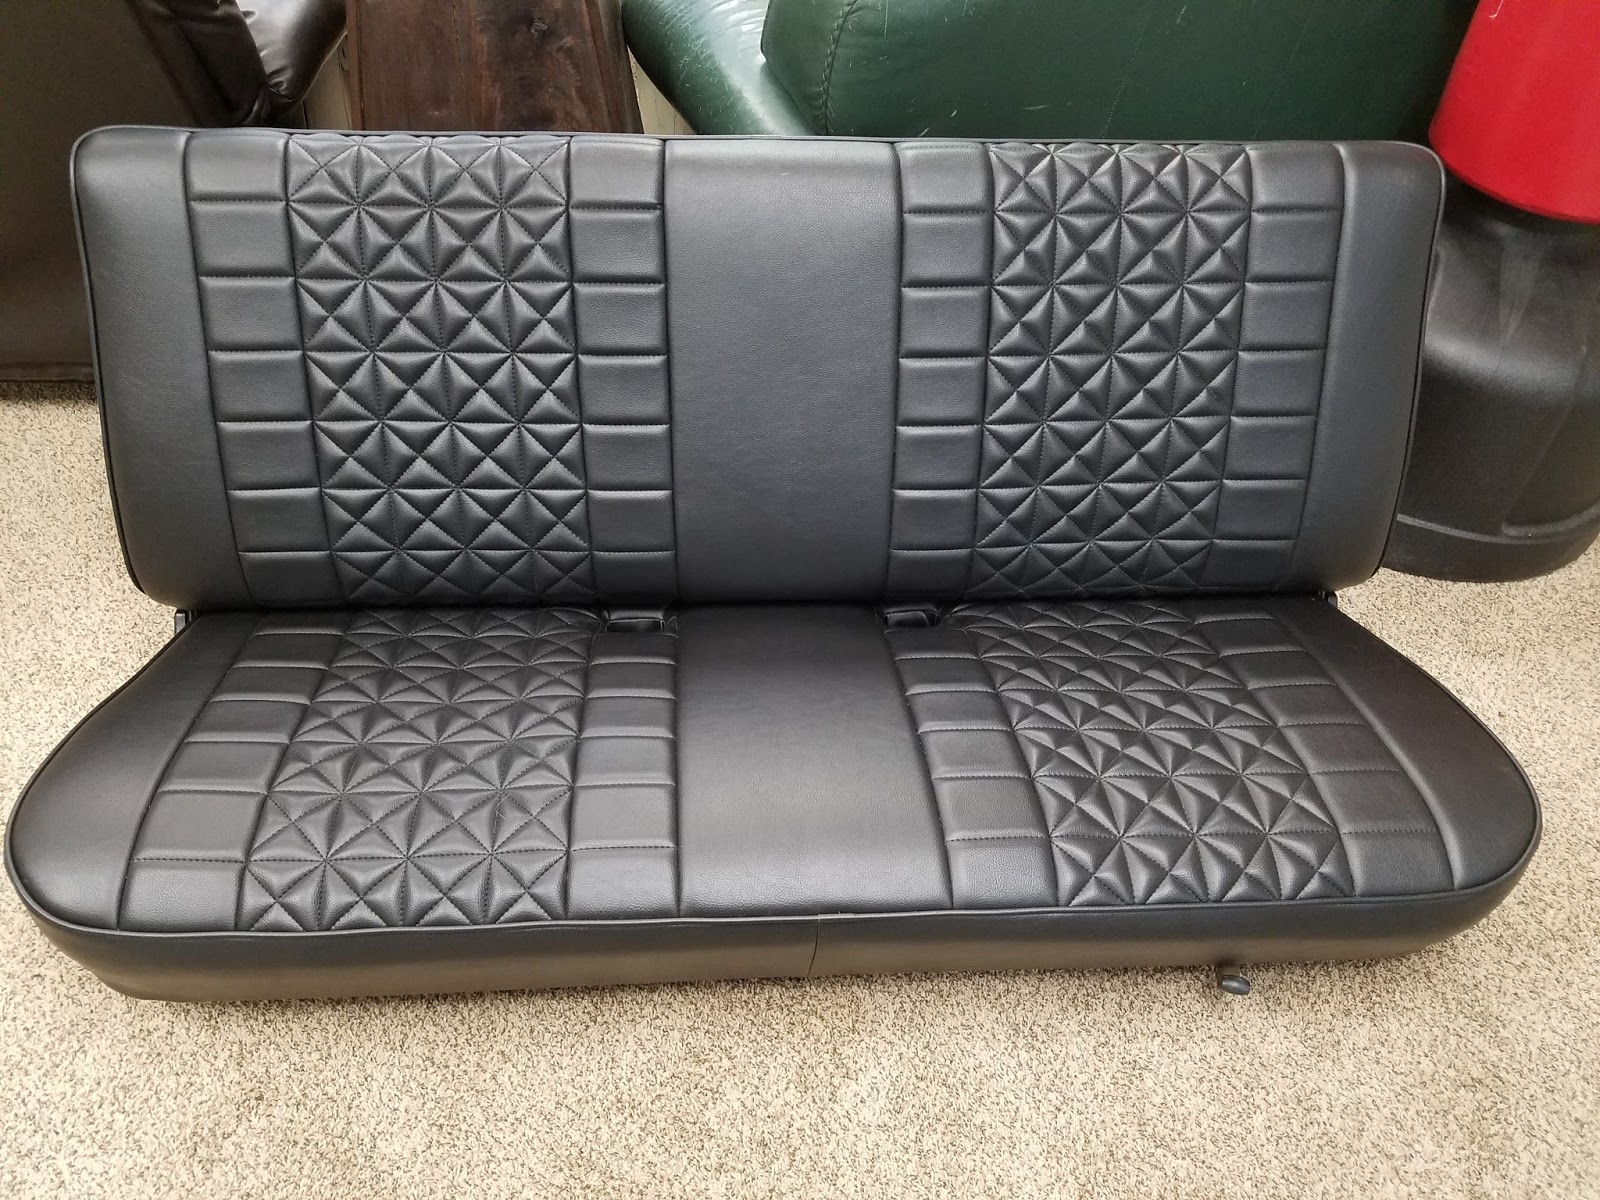 Magnificent 1977 Chevy K10 Restore Bench Looking Good Beatyapartments Chair Design Images Beatyapartmentscom